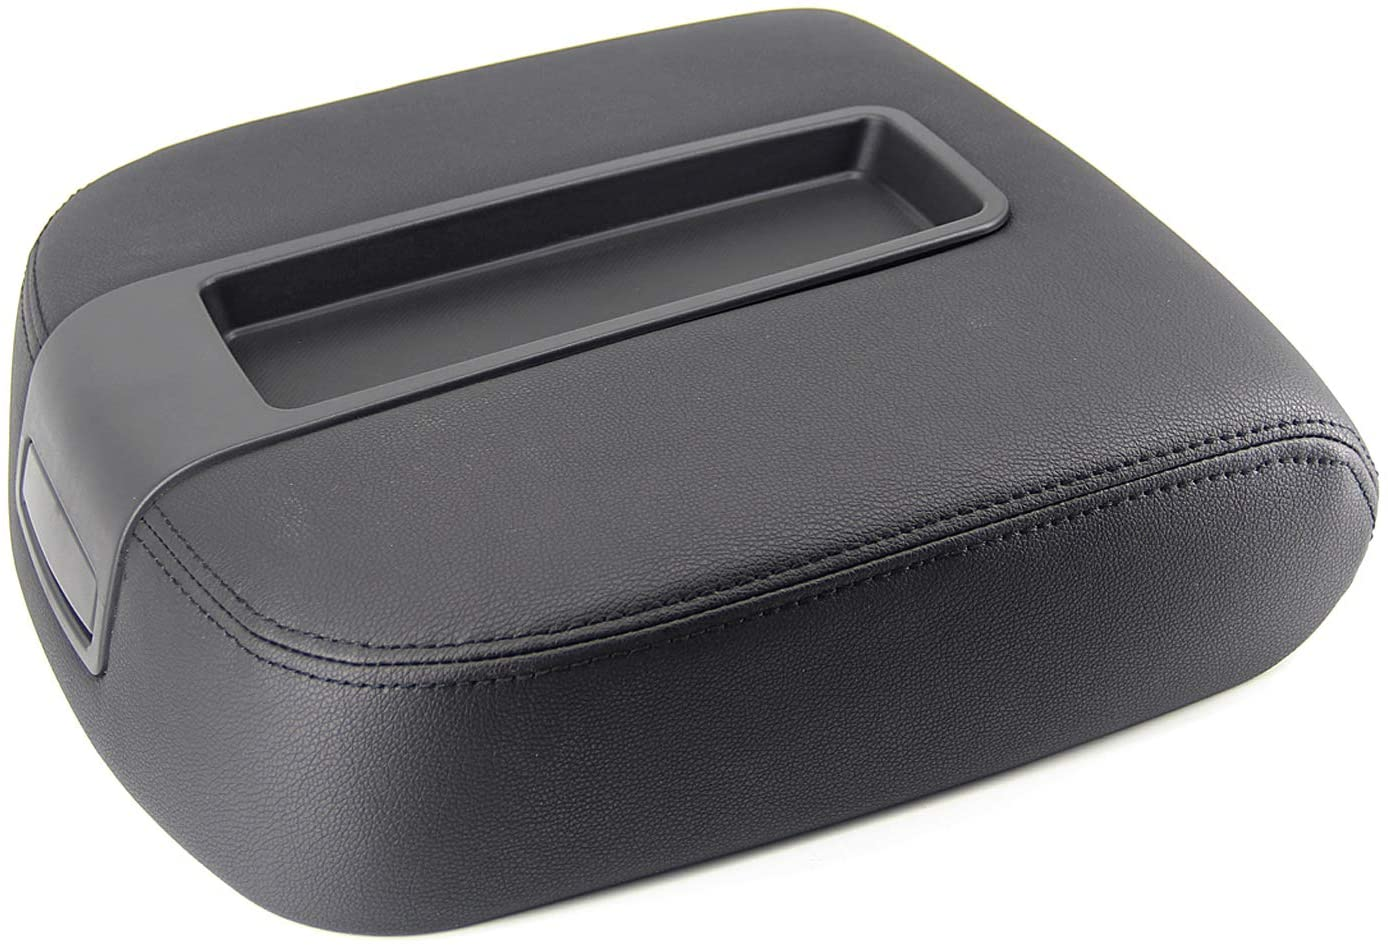 FEXON Center Console Lid Cover Replacement for 2007-2013 Chevy Tahoe Silverado Suburban and GMC Yukon Sierra 1500 2500 2500HD 3500HD Avalanche 15217111 924-875 Black